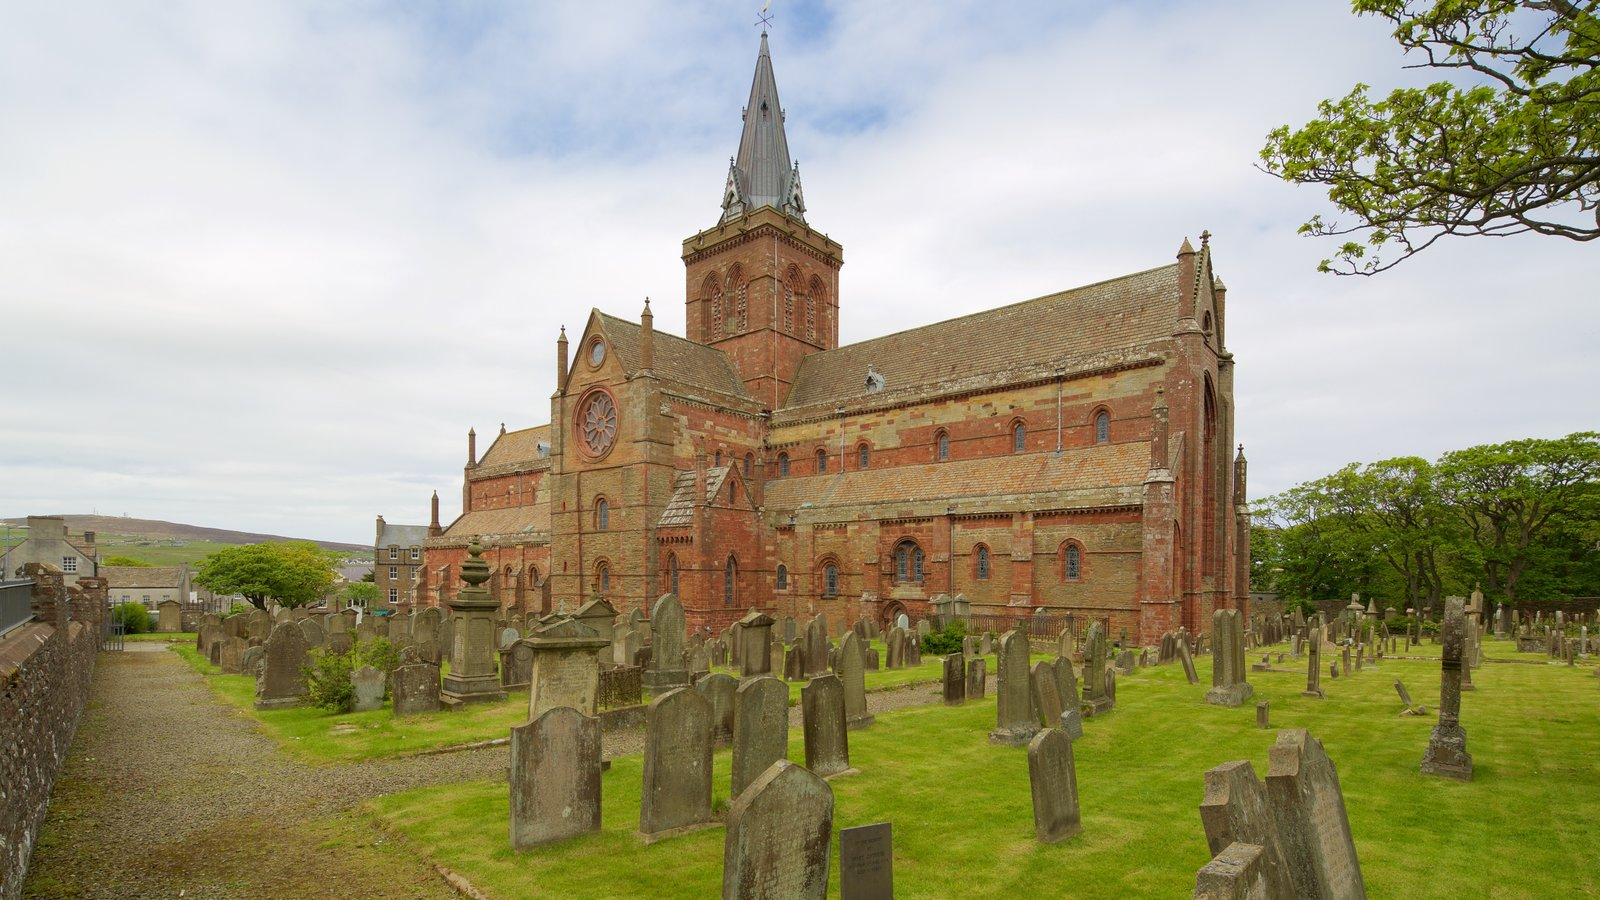 St. Magnus Cathedral showing heritage architecture, a cemetery and a church or cathedral